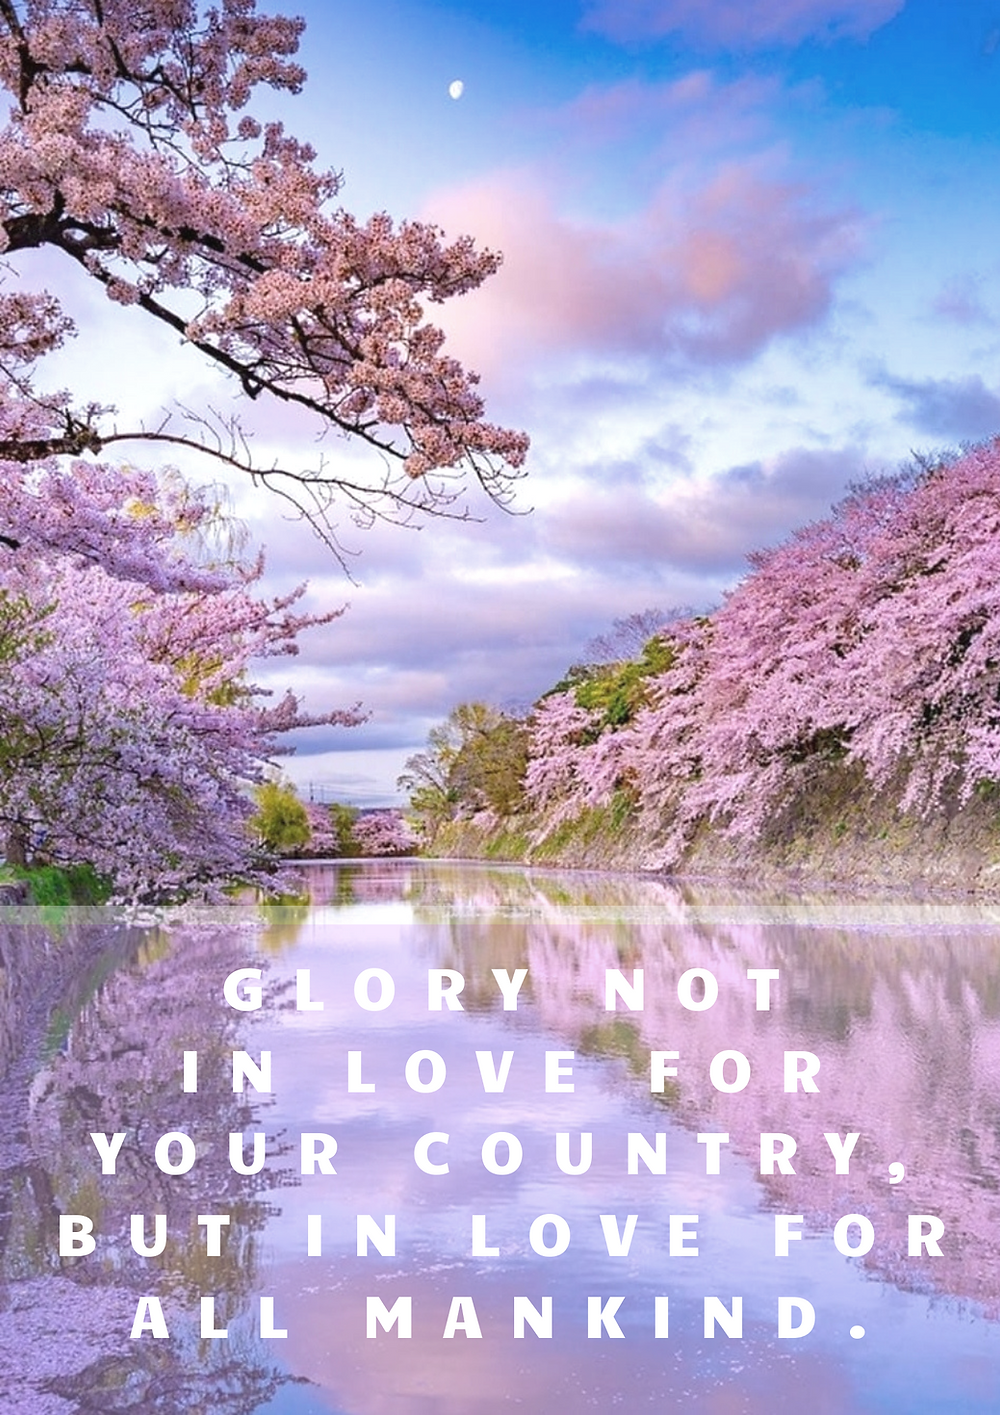 Glory not in love for your country, but in love for all mankind.